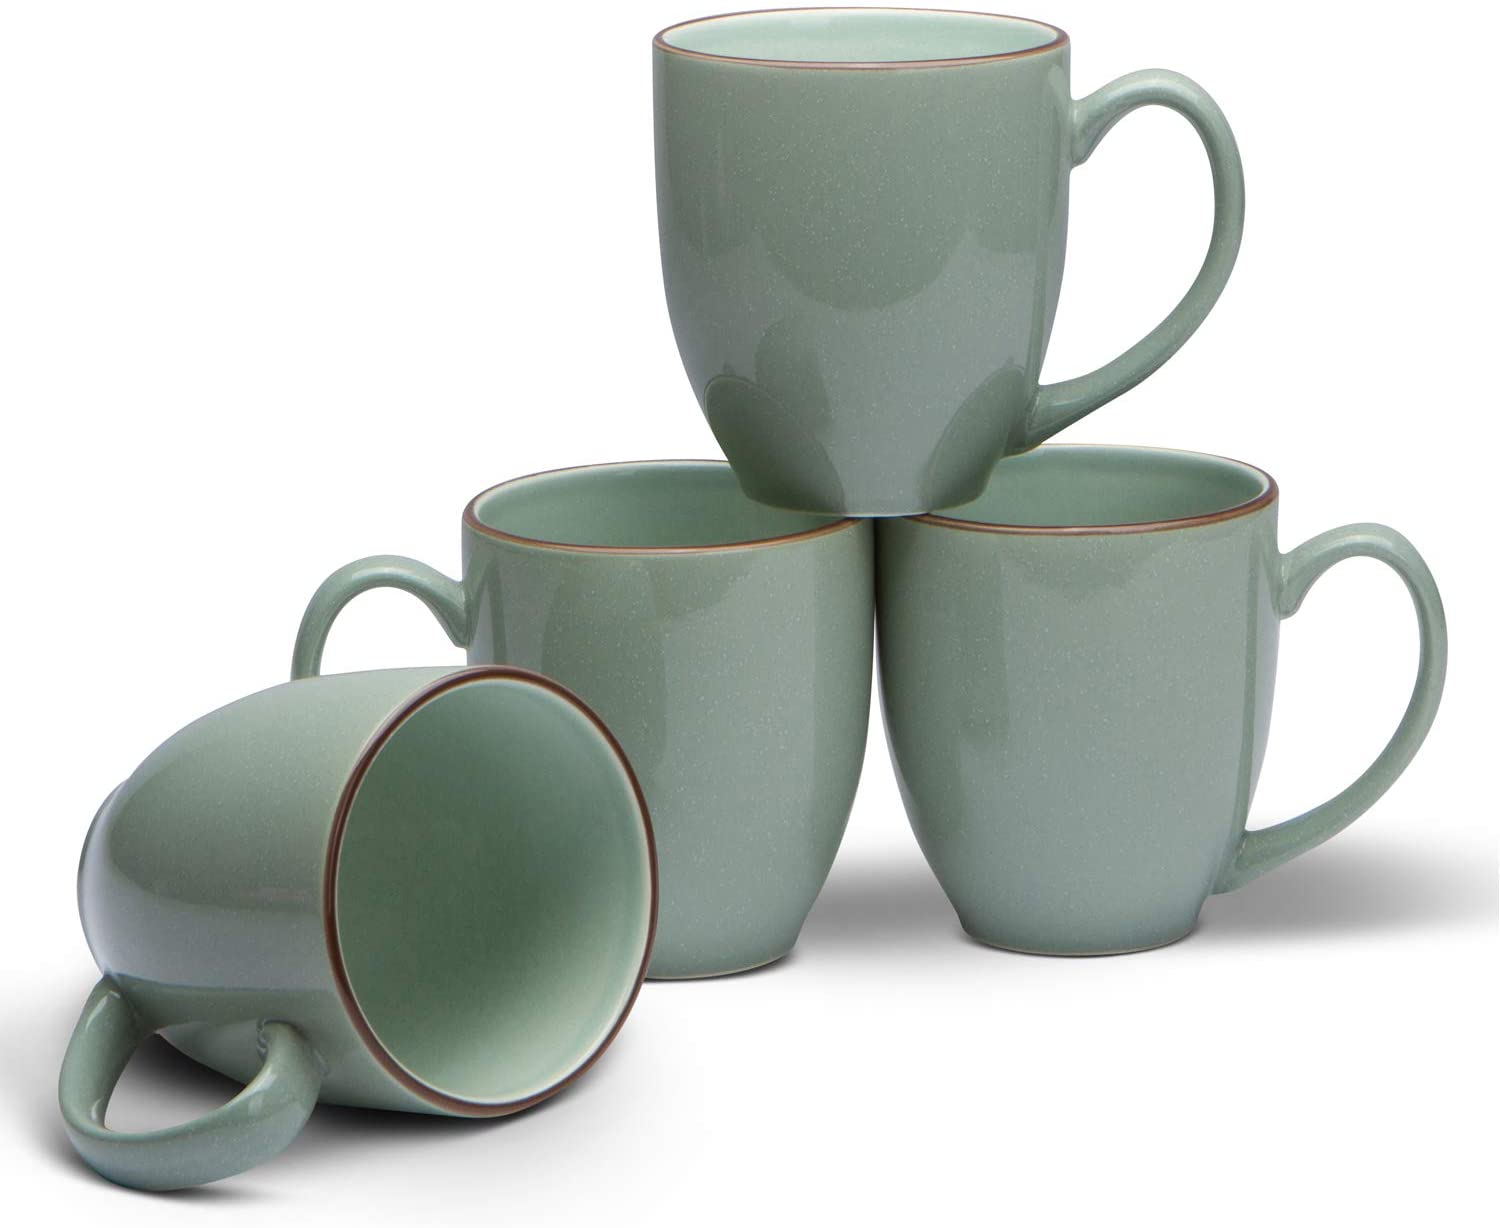 Serami 14oz Bistro Cool Green Mugs for Coffee or Tea. Large Handles and Ceramic Construction, Set of 4